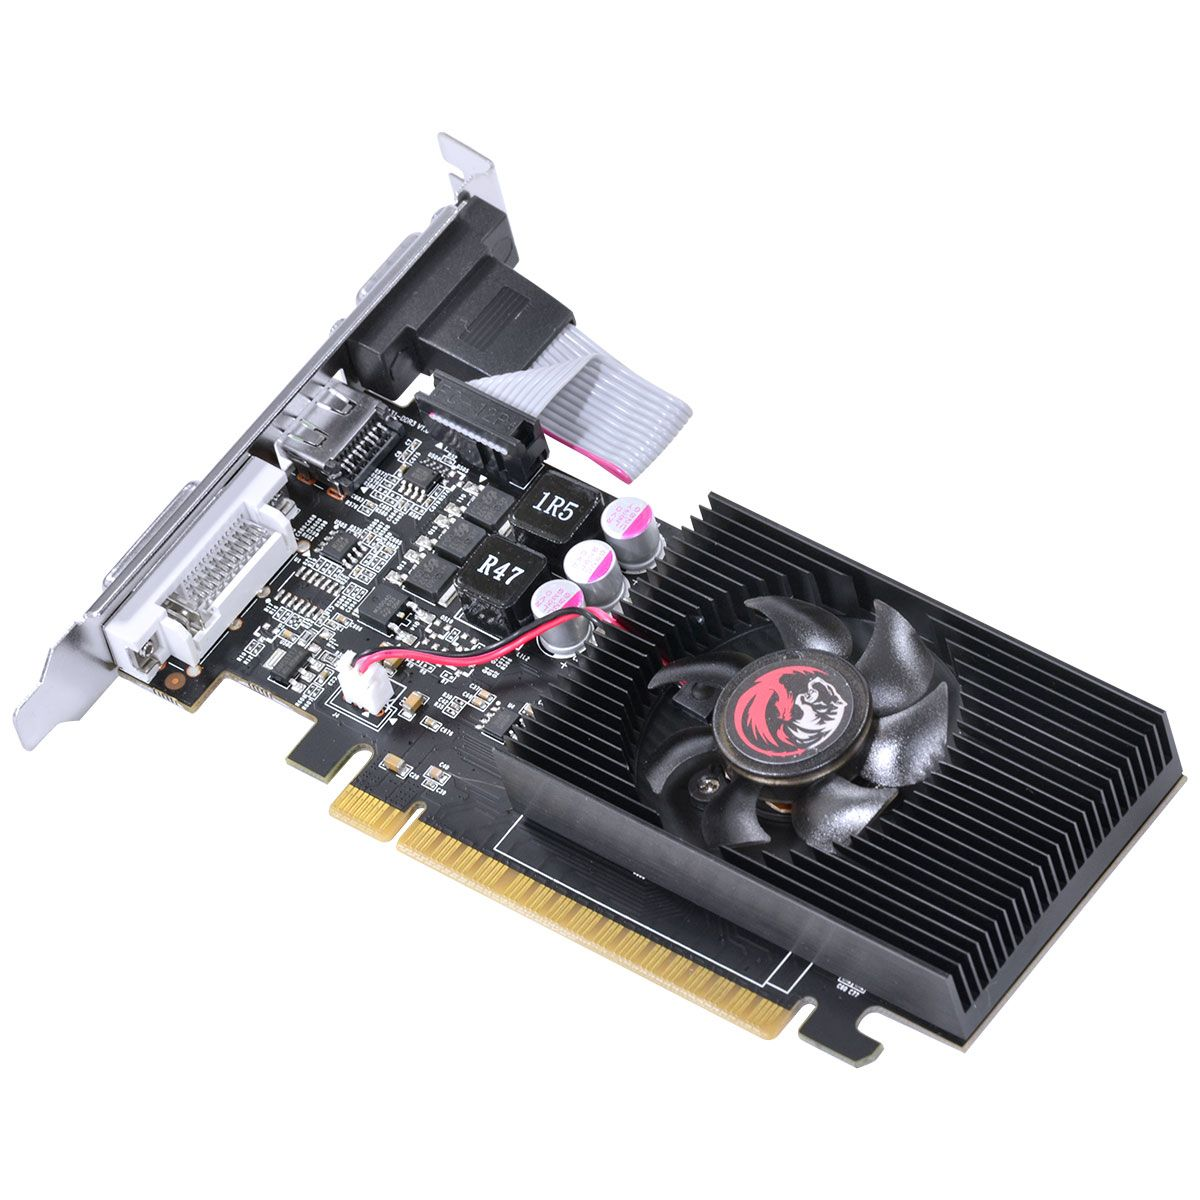 Placa de Vídeo GeForce GT430 2GB 128Bits DDR3 Low Profile PPOV430GT12802D3 - Pcyes